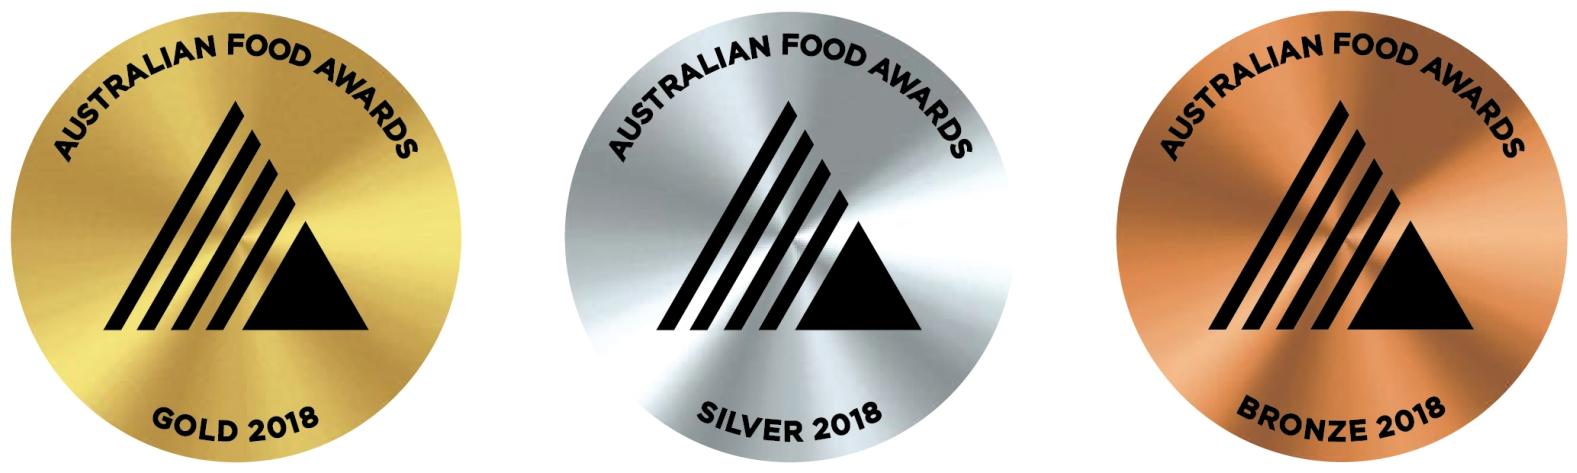 Australian Food Awards 2018